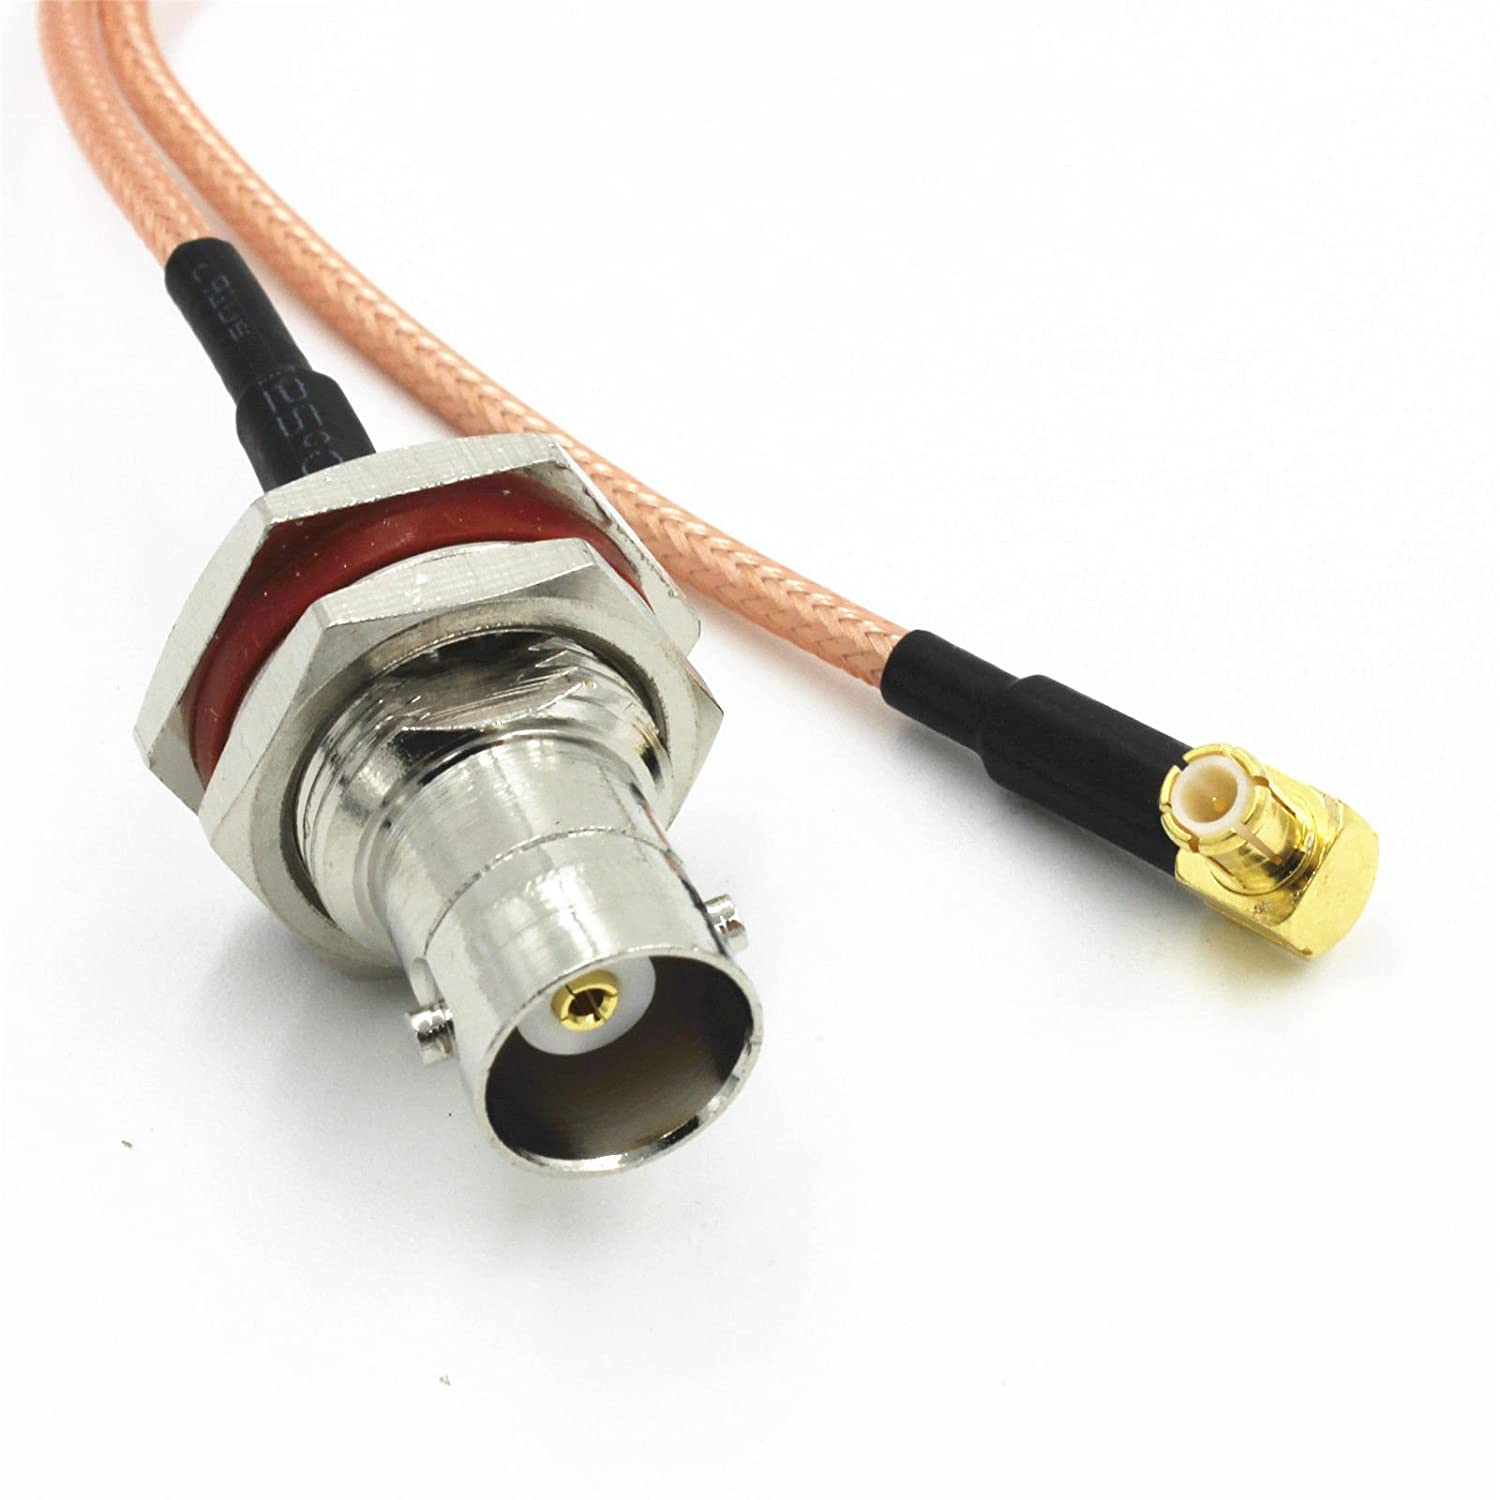 1 x BNC Female Nut Bulkhead to MCX Male Right Angle RG316 Pigtail RF Cable 15cm high quality quick ship from US